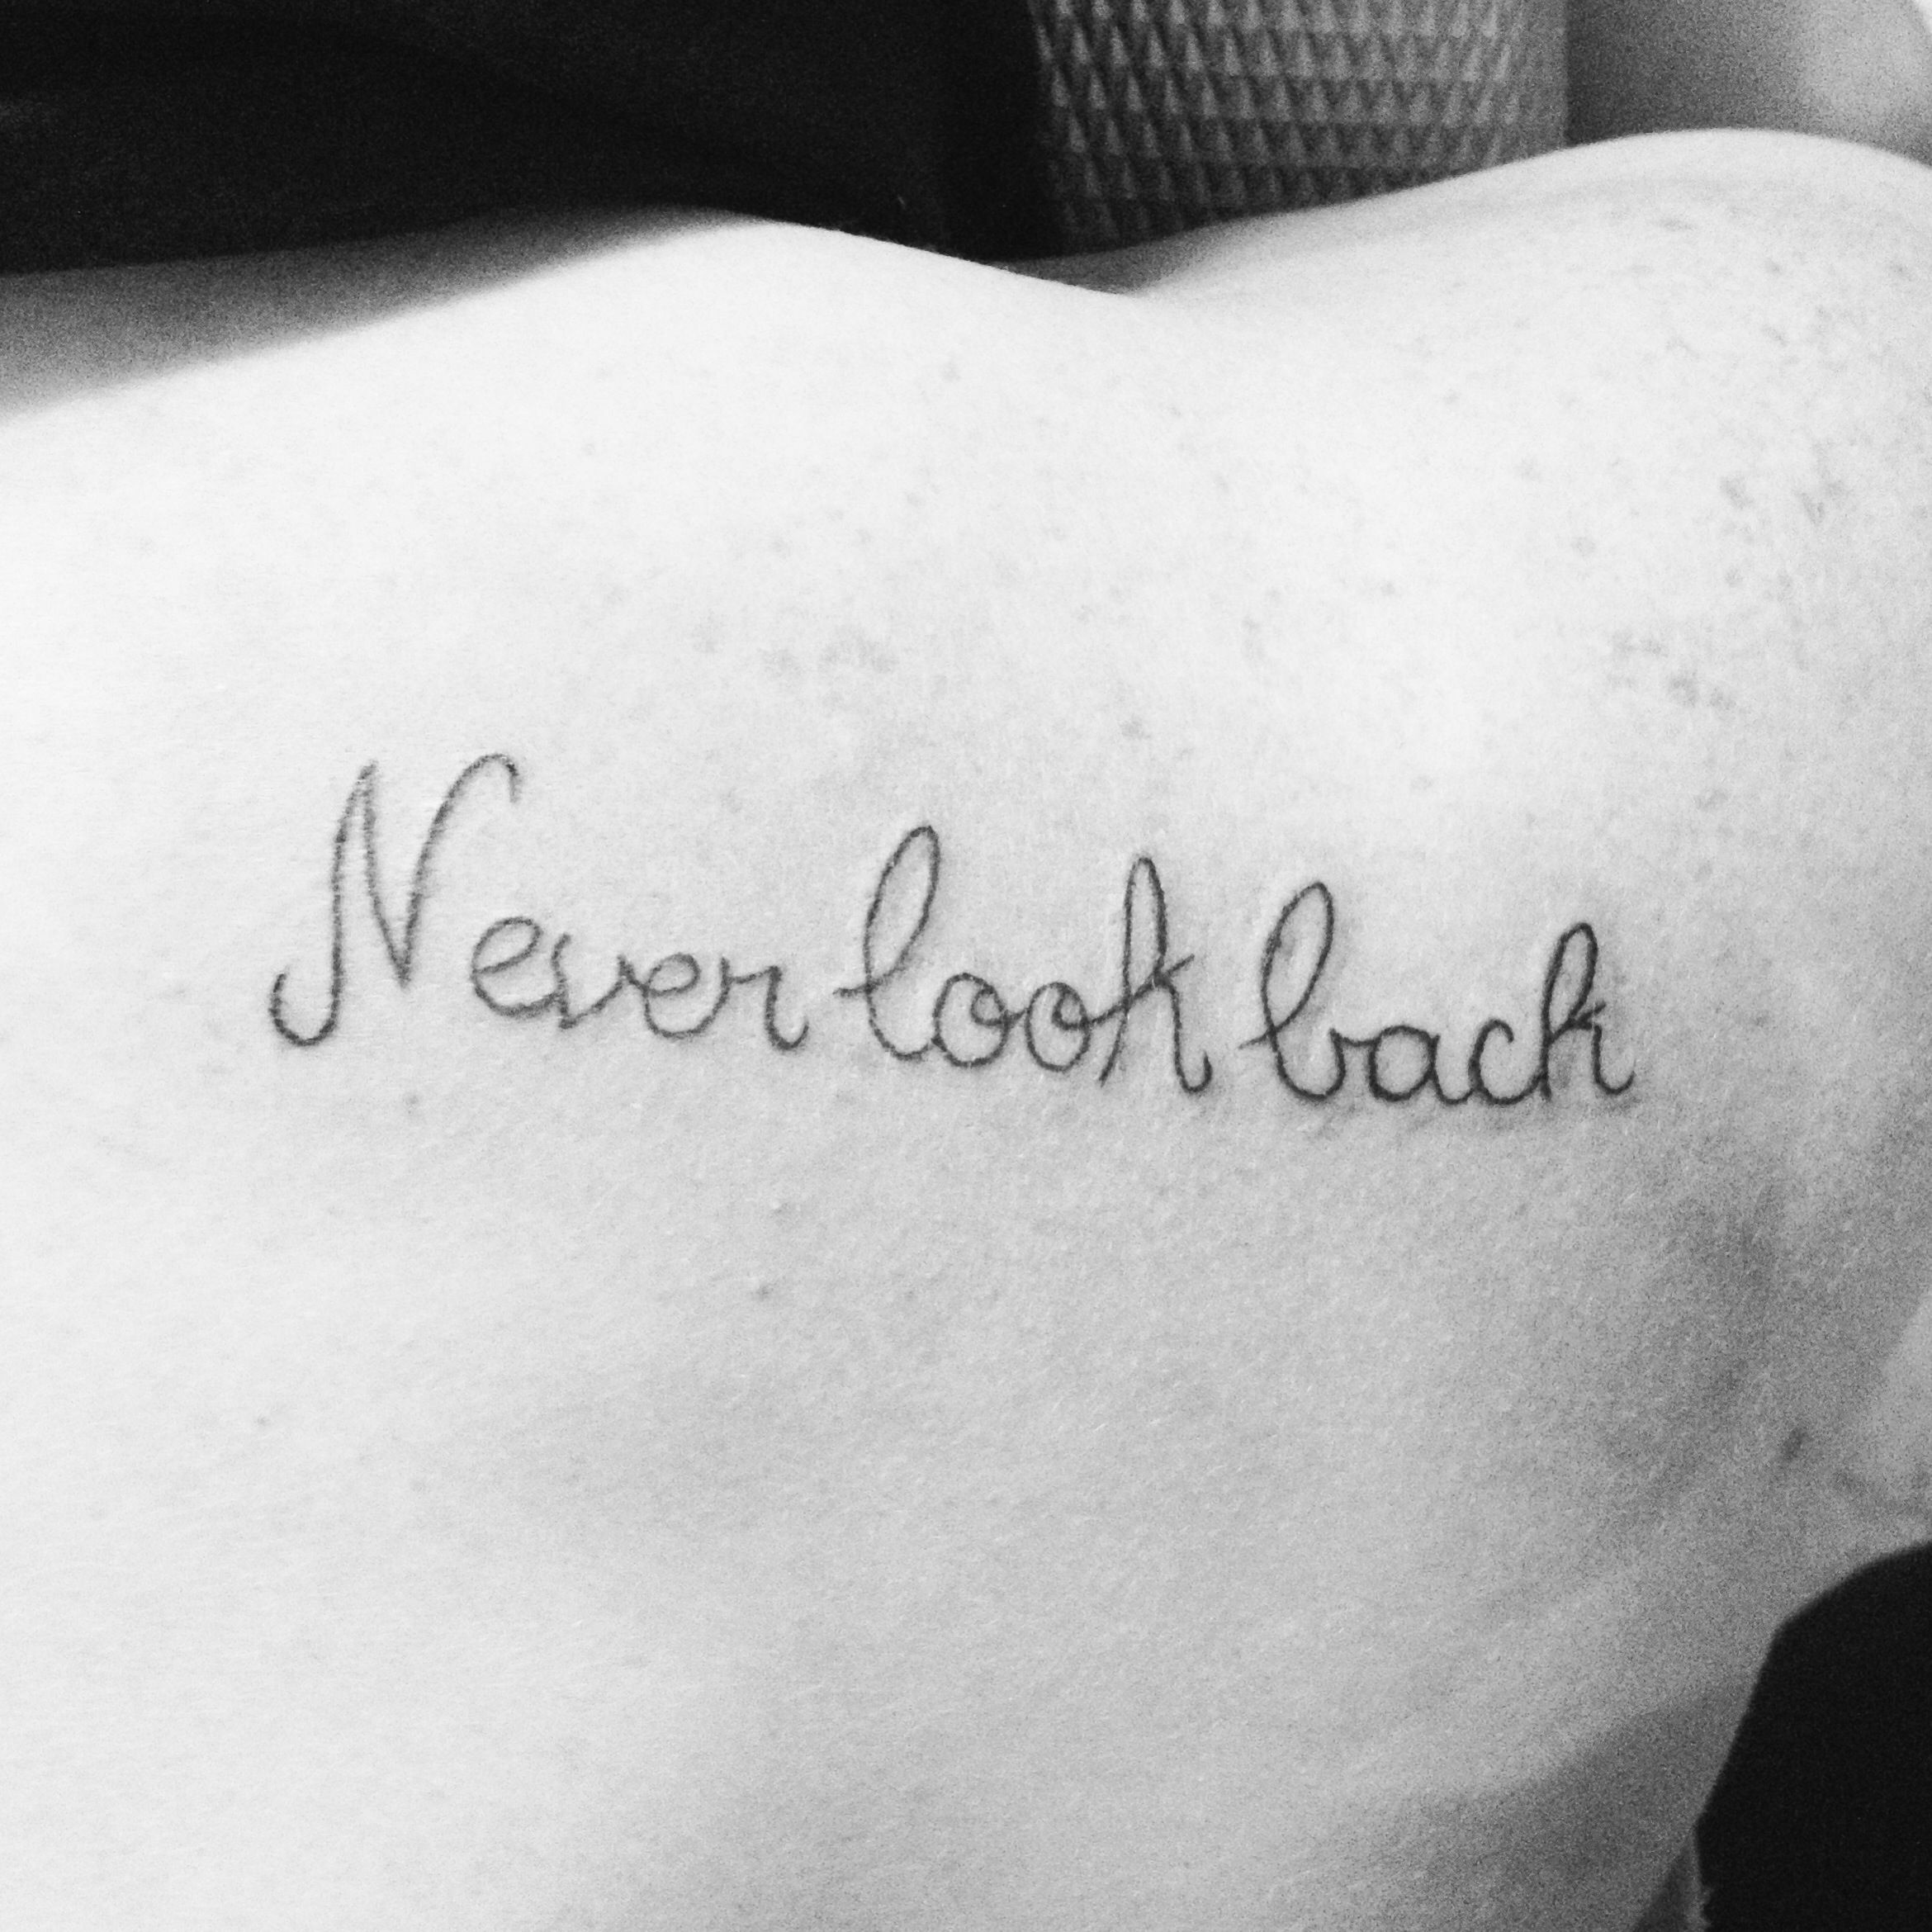 Fonts That Look Like Tattoos: Never Look Back...would Like This Tattooed Down My Spine